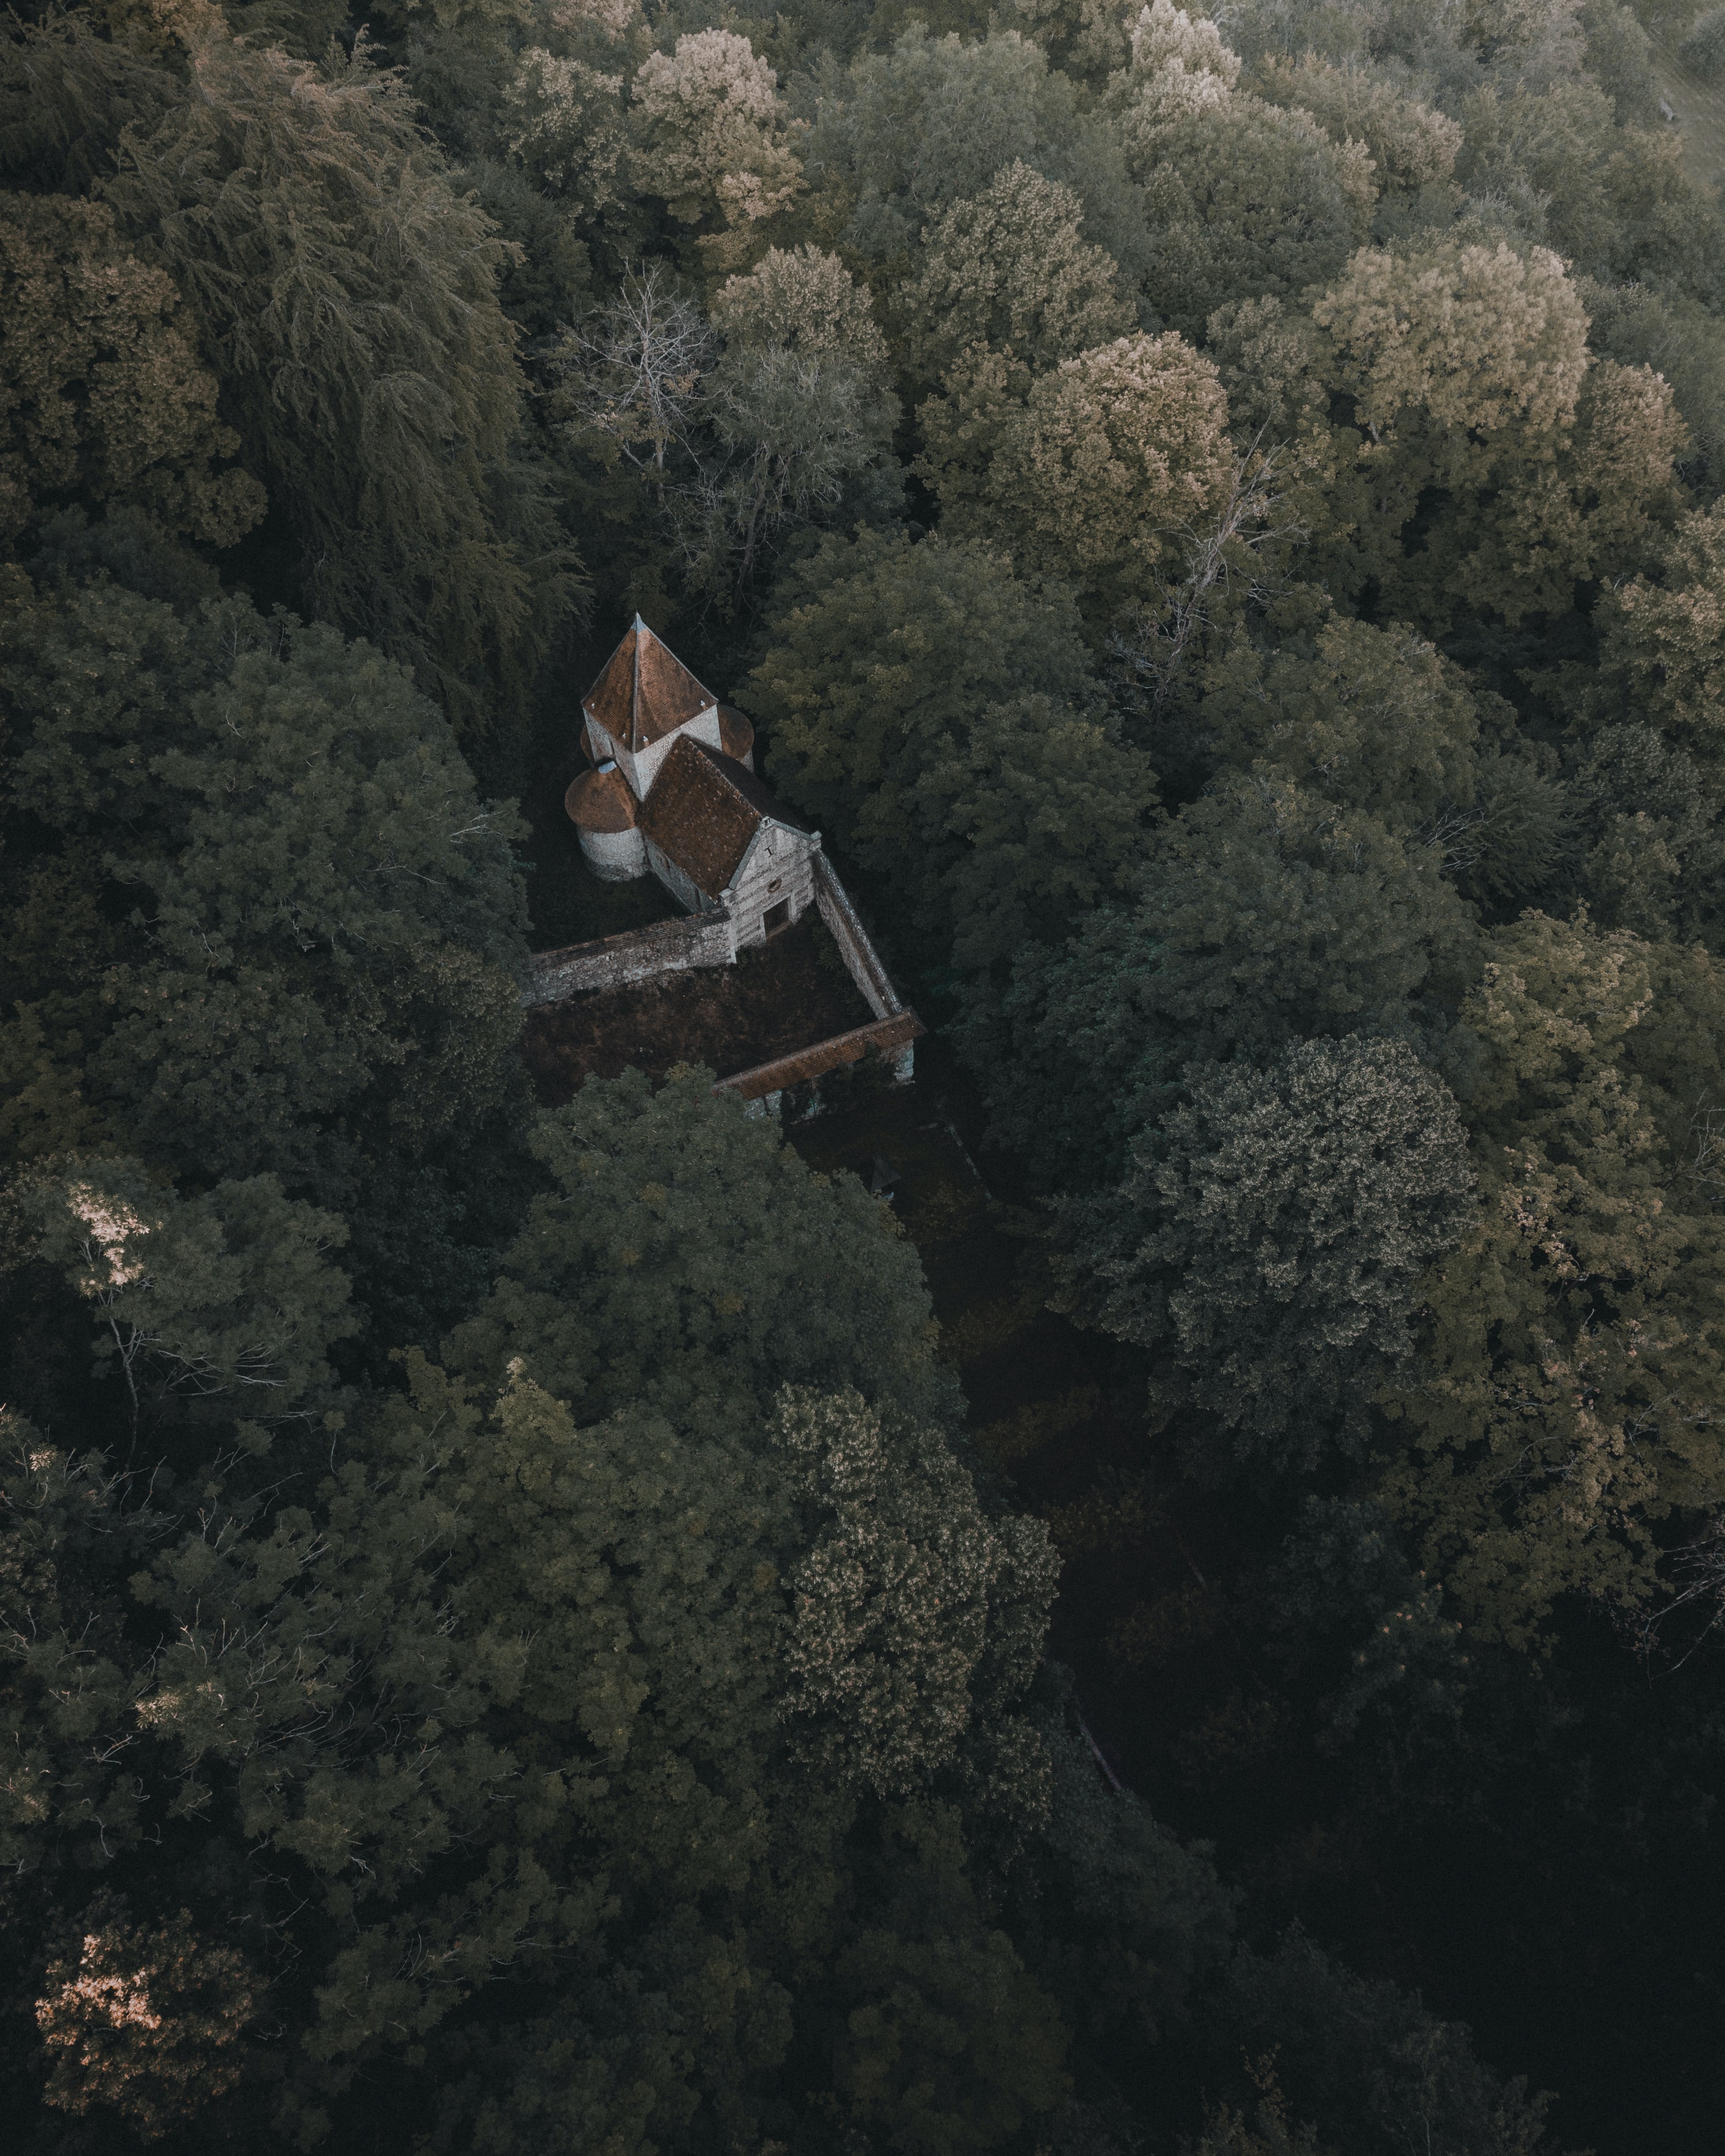 gray and white house surrounded by trees